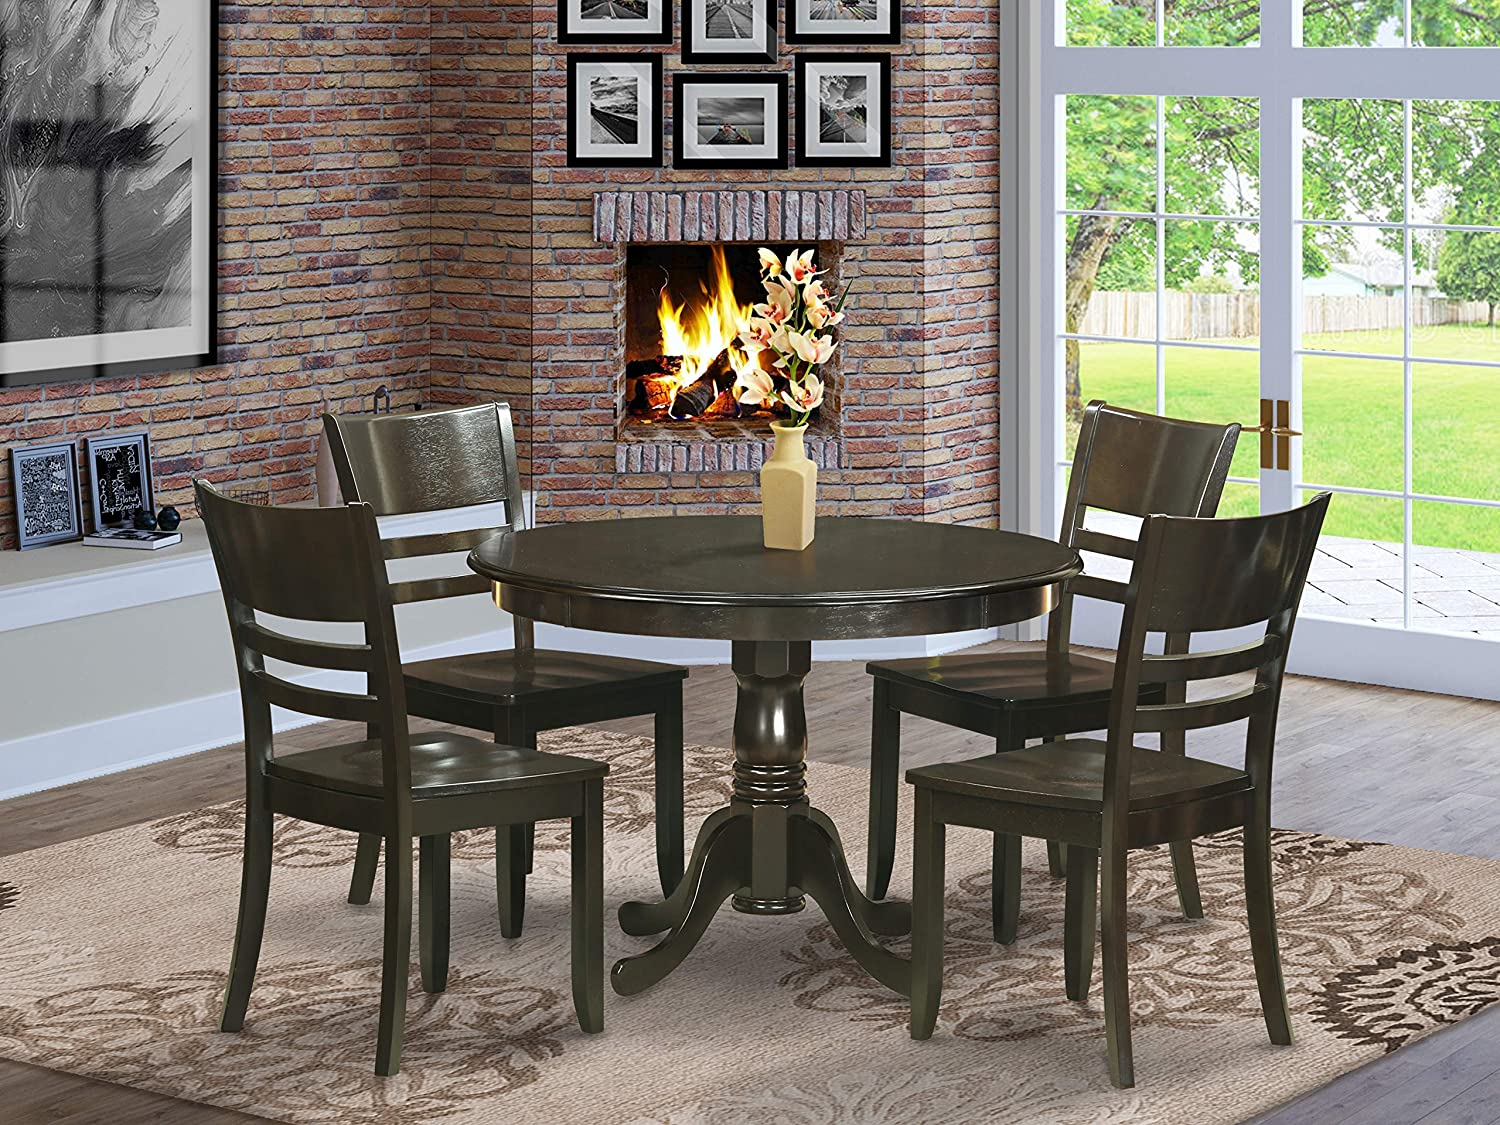 Amazon Com 5 Pc Small Kitchen Table And Chairs Set Dining 4 Dinette Furniture Decor